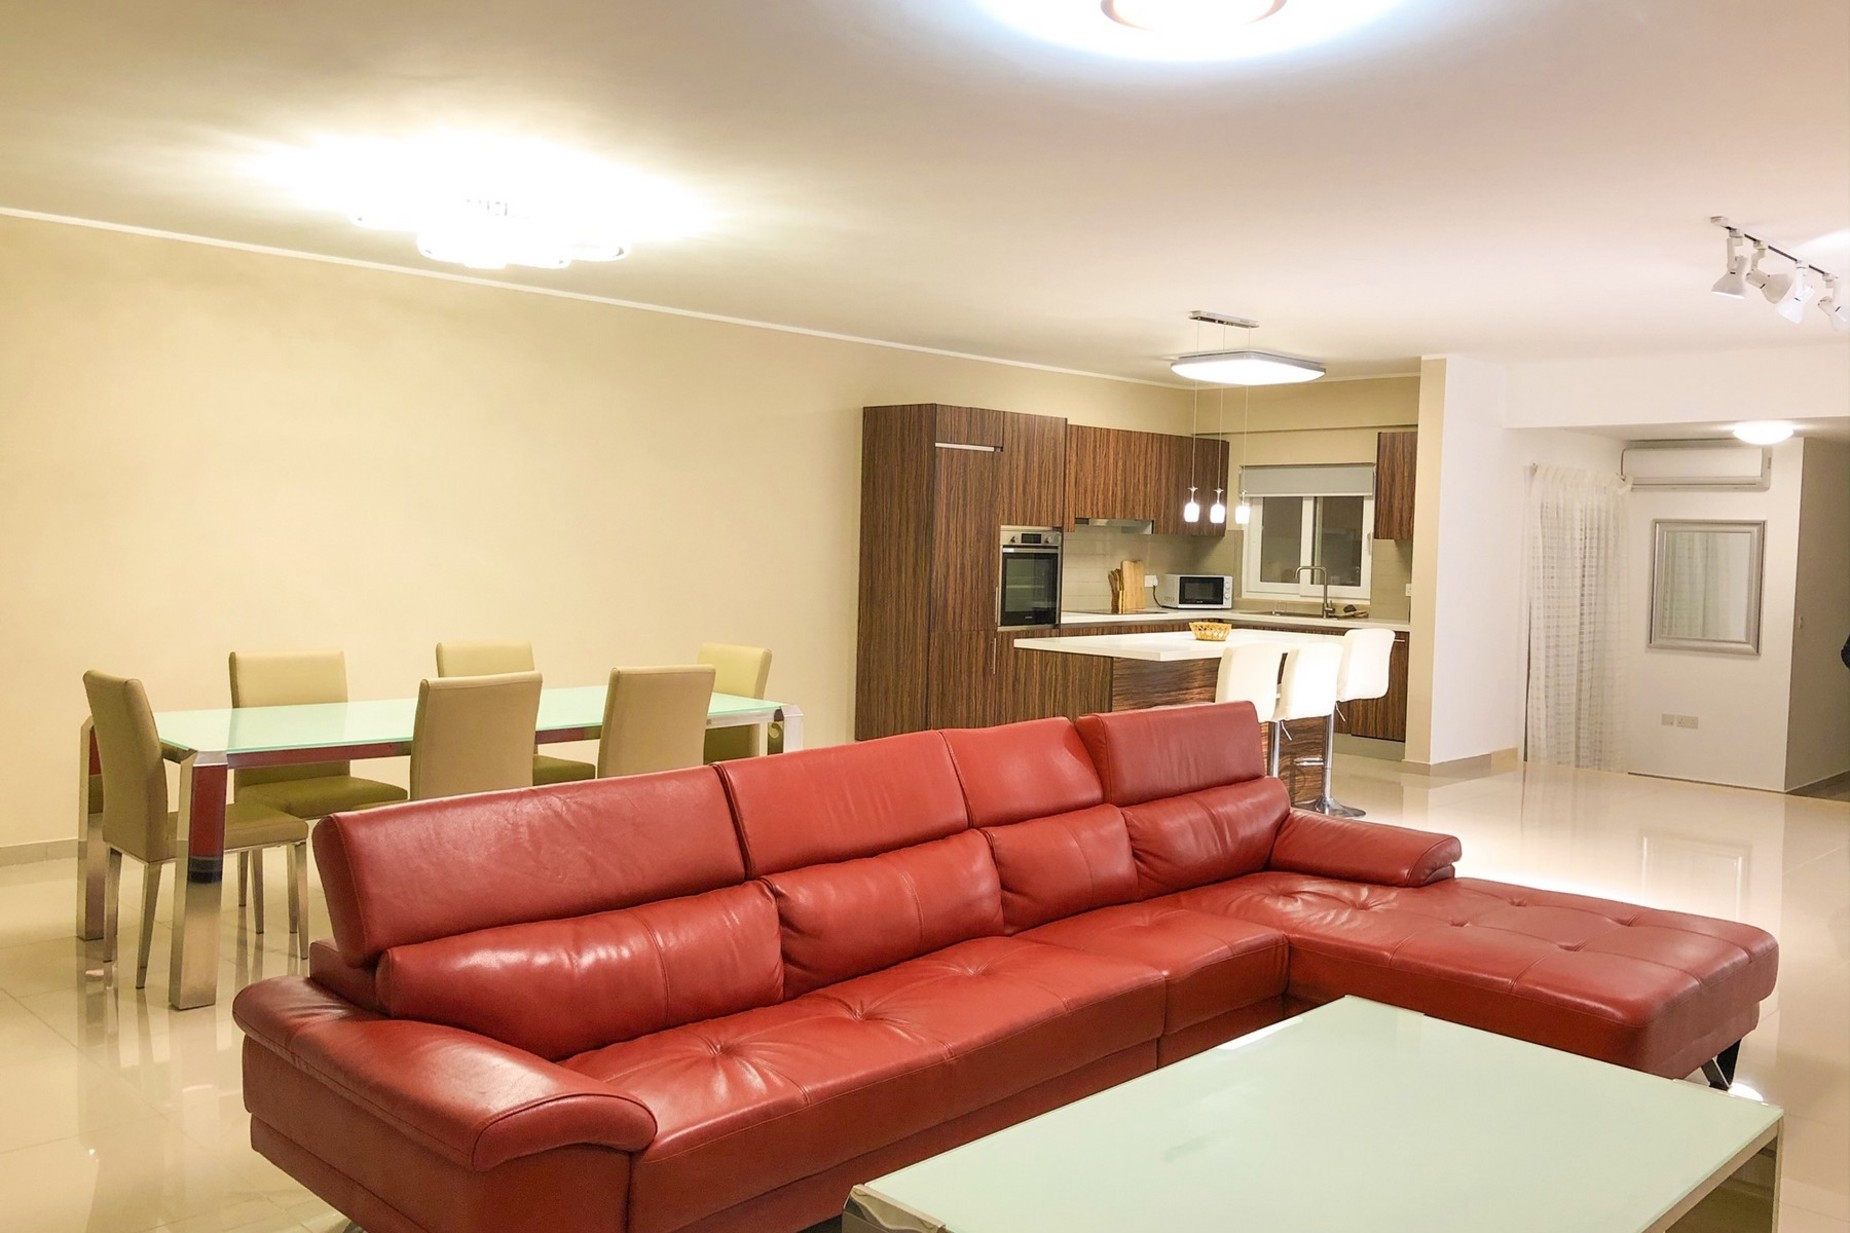 3 bed Apartment For Rent in Ibragg, Ibragg - thumb 3